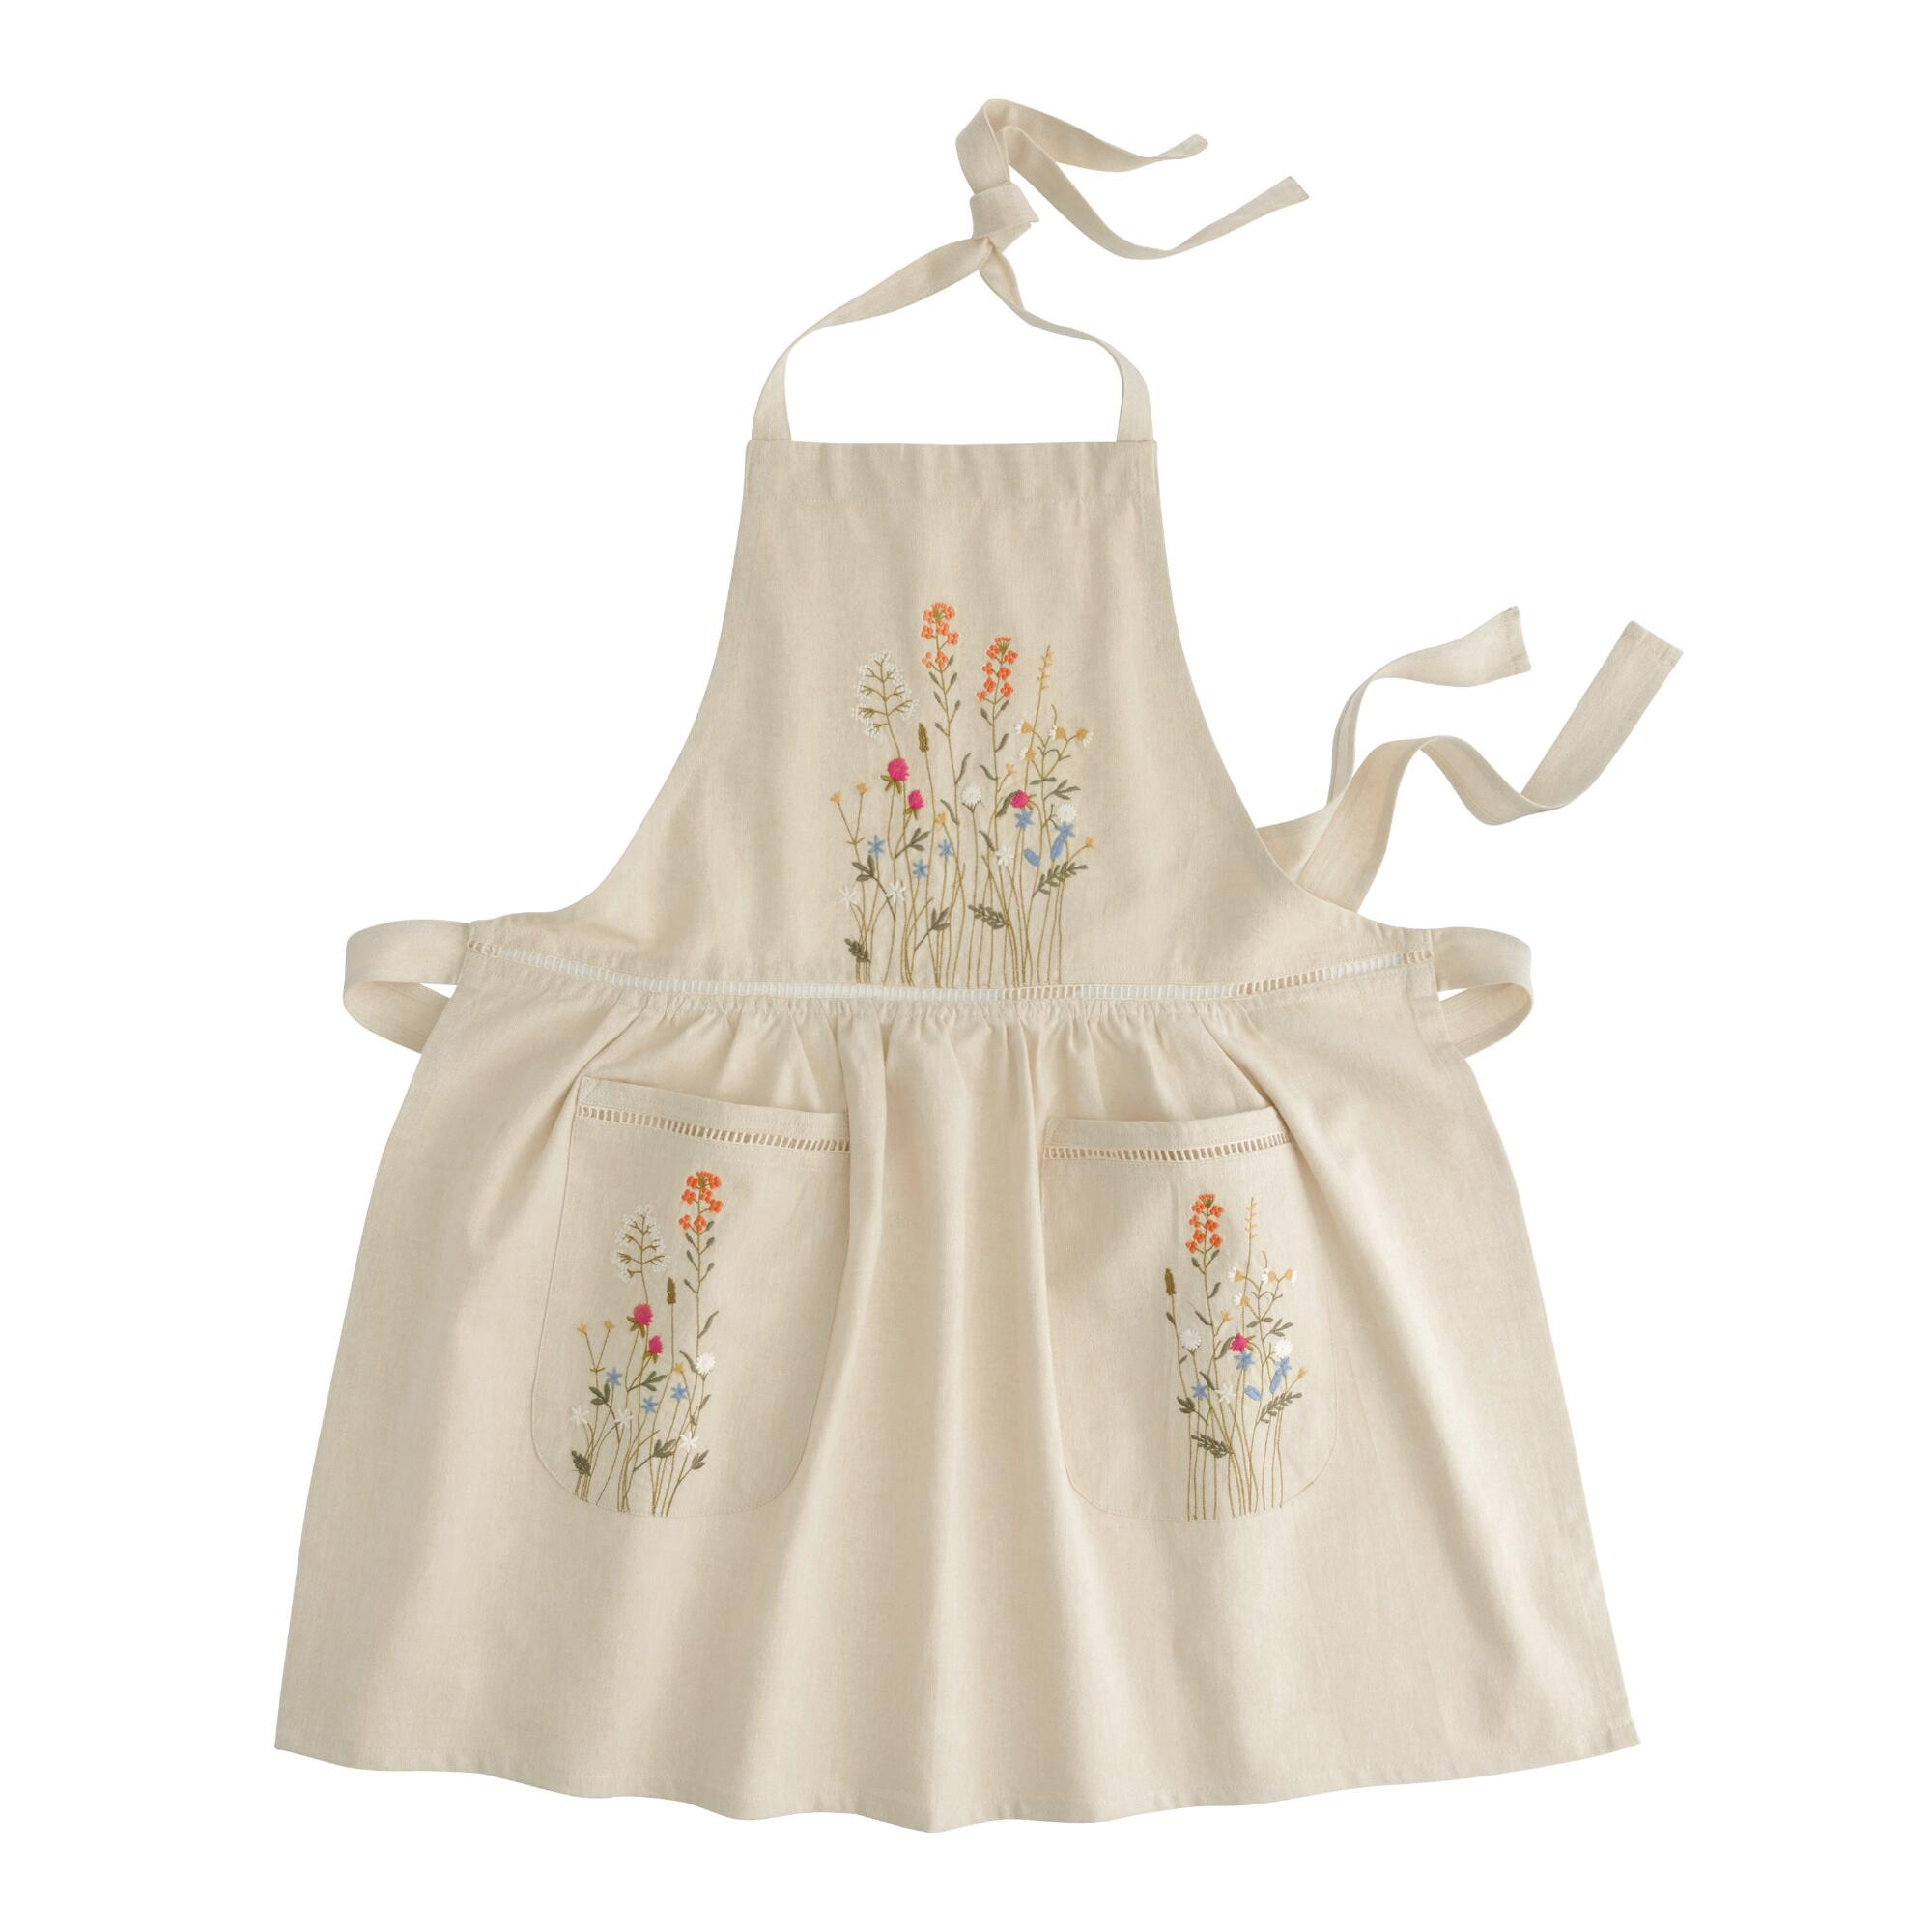 Vintage Aprons, Retro Aprons, Old Fashioned Aprons & Patterns Natural Embroidered Floral Apron with Lace Trim by World Market $24.99 AT vintagedancer.com